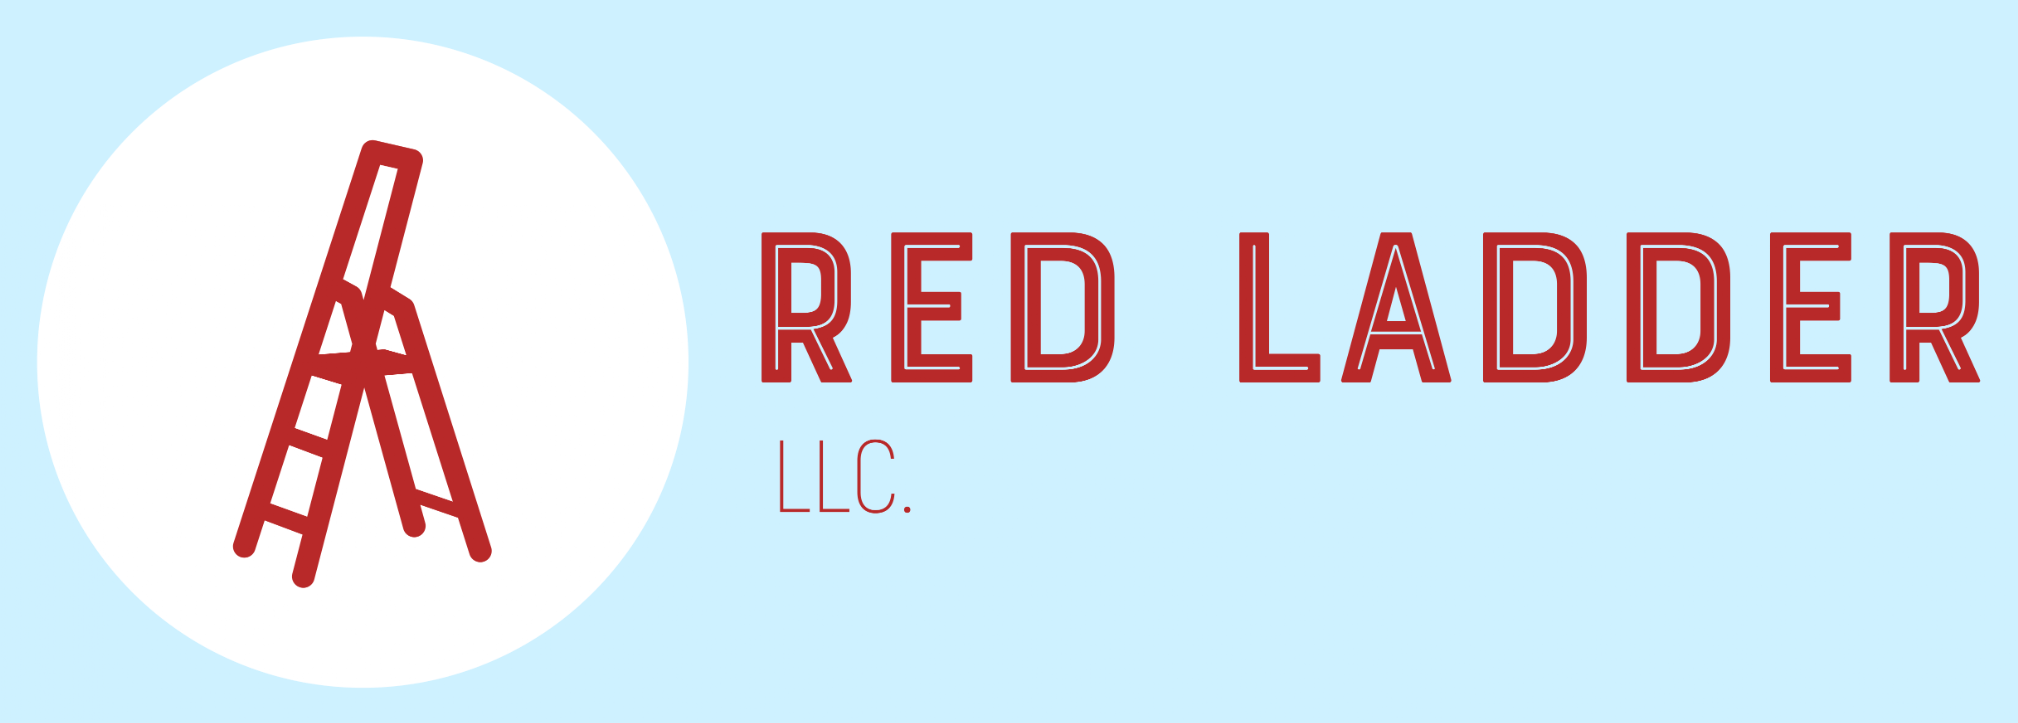 Red Ladder llc